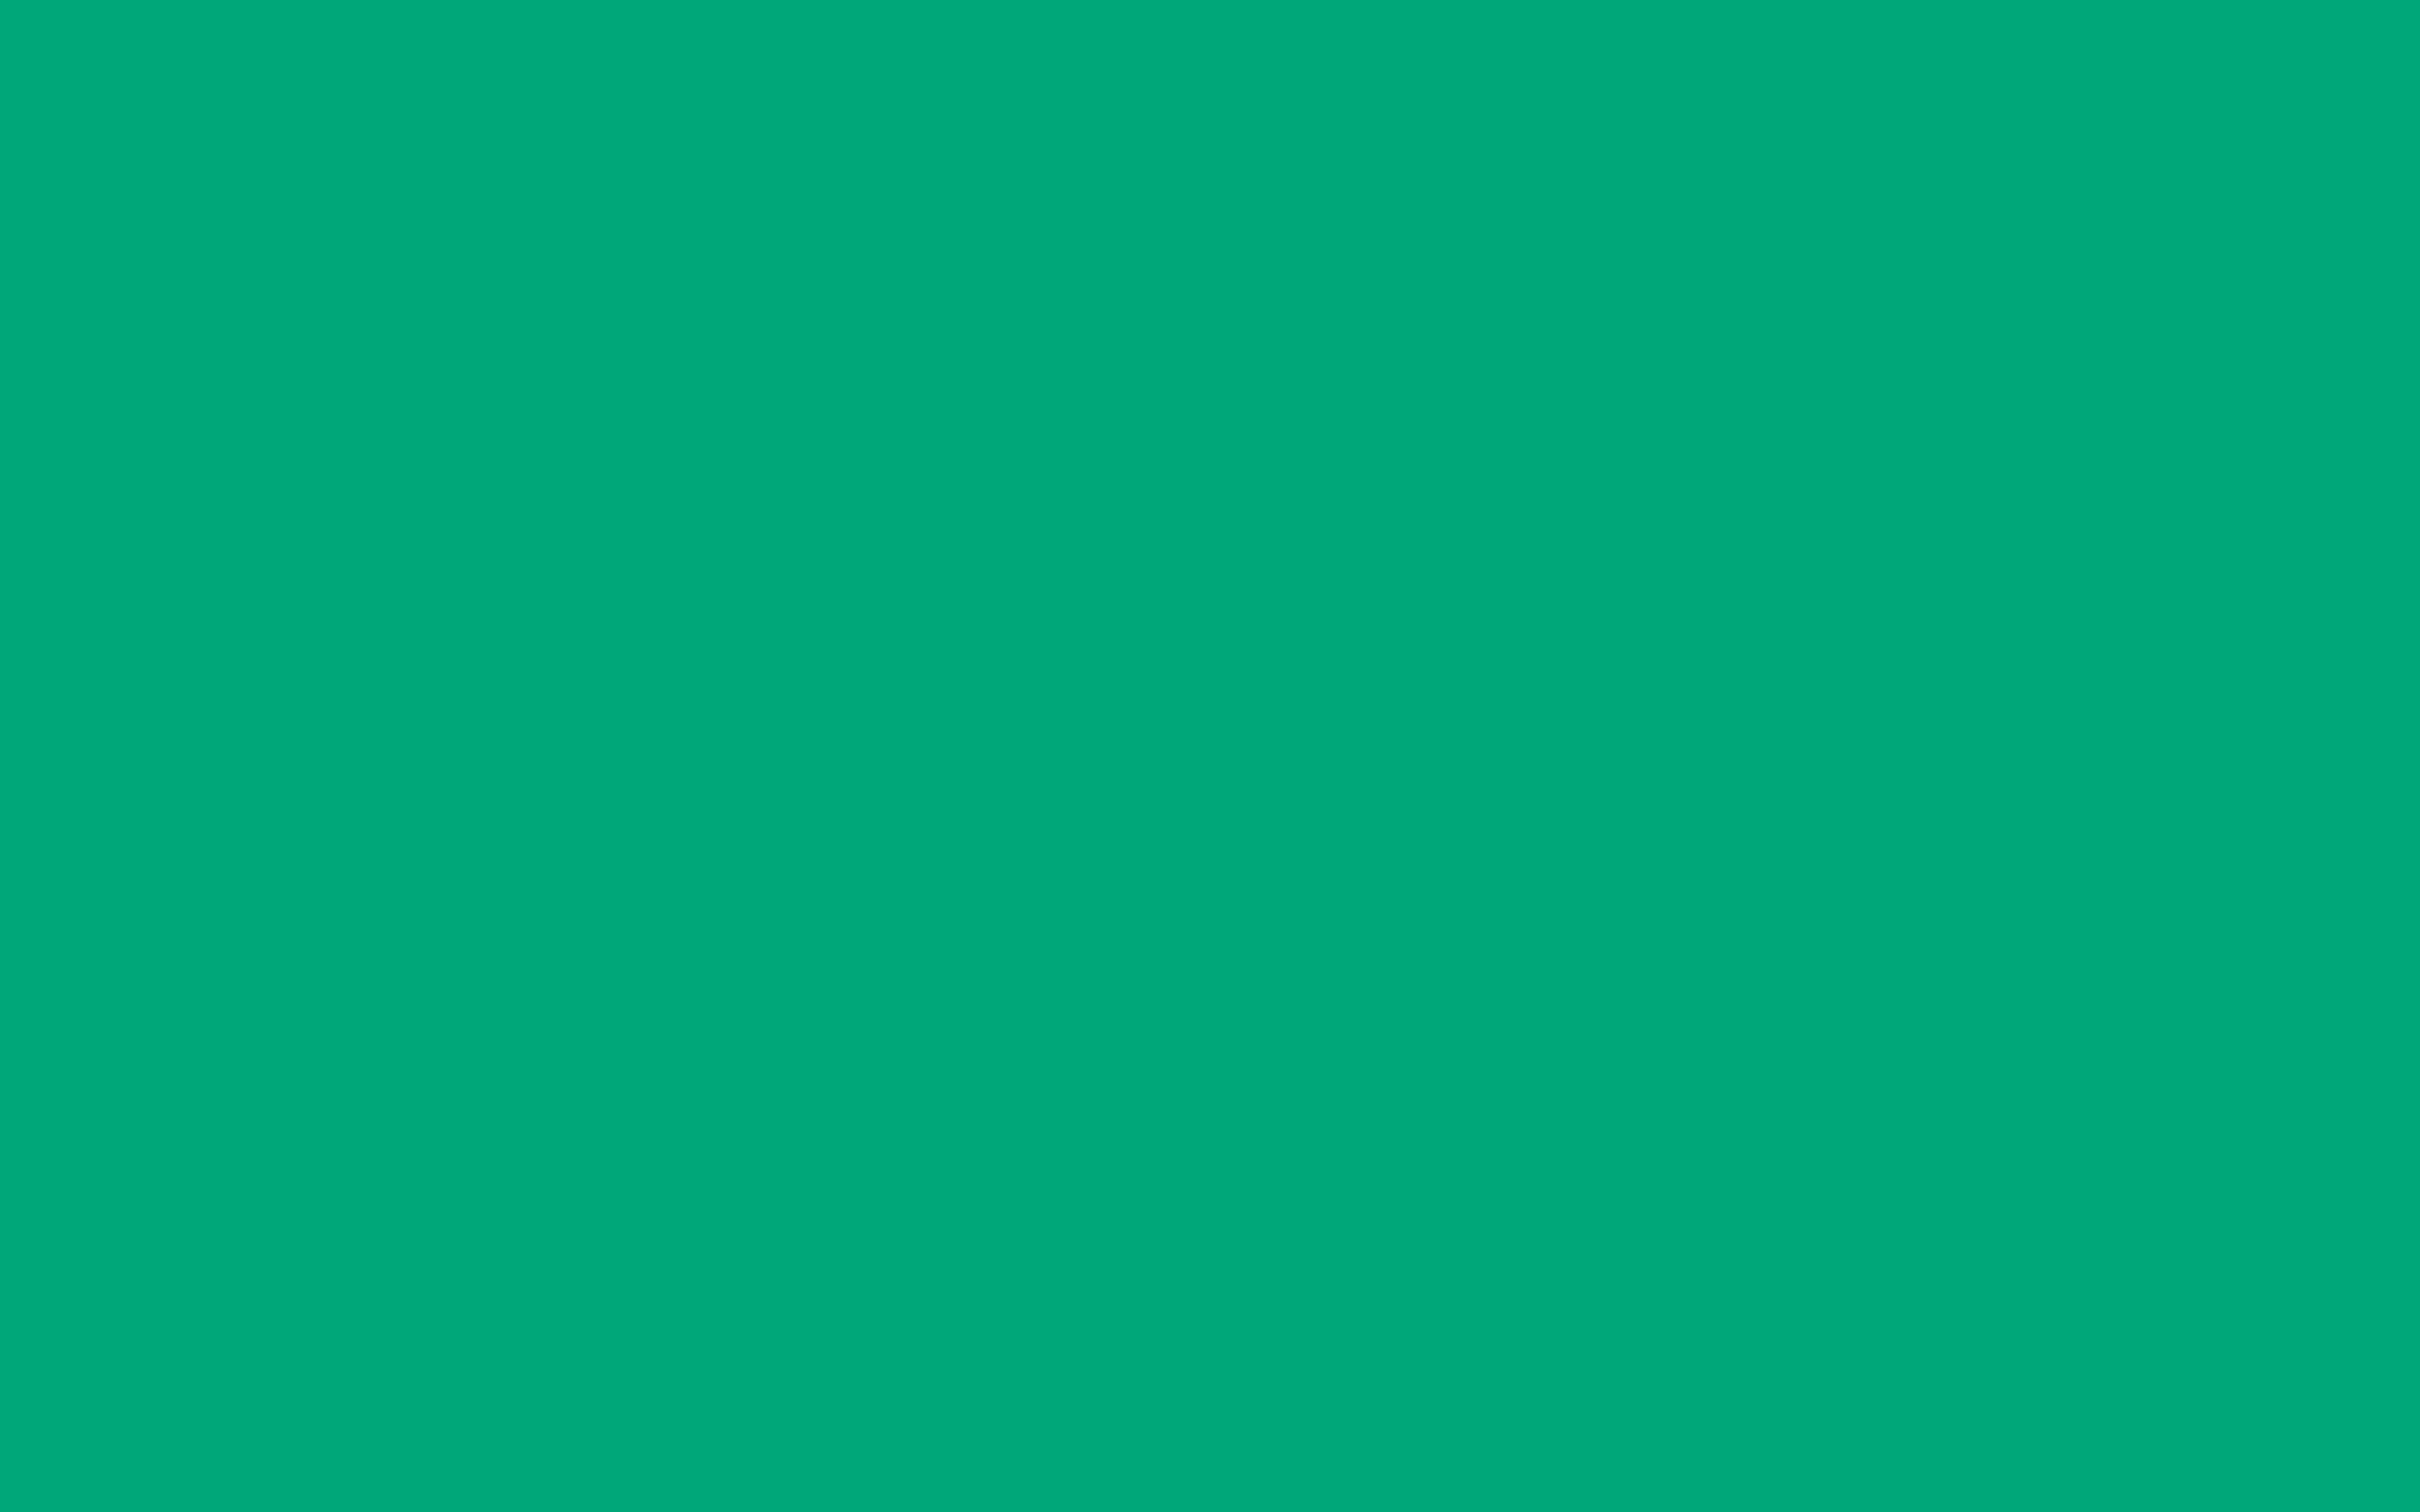 2560x1600 Green Munsell Solid Color Background